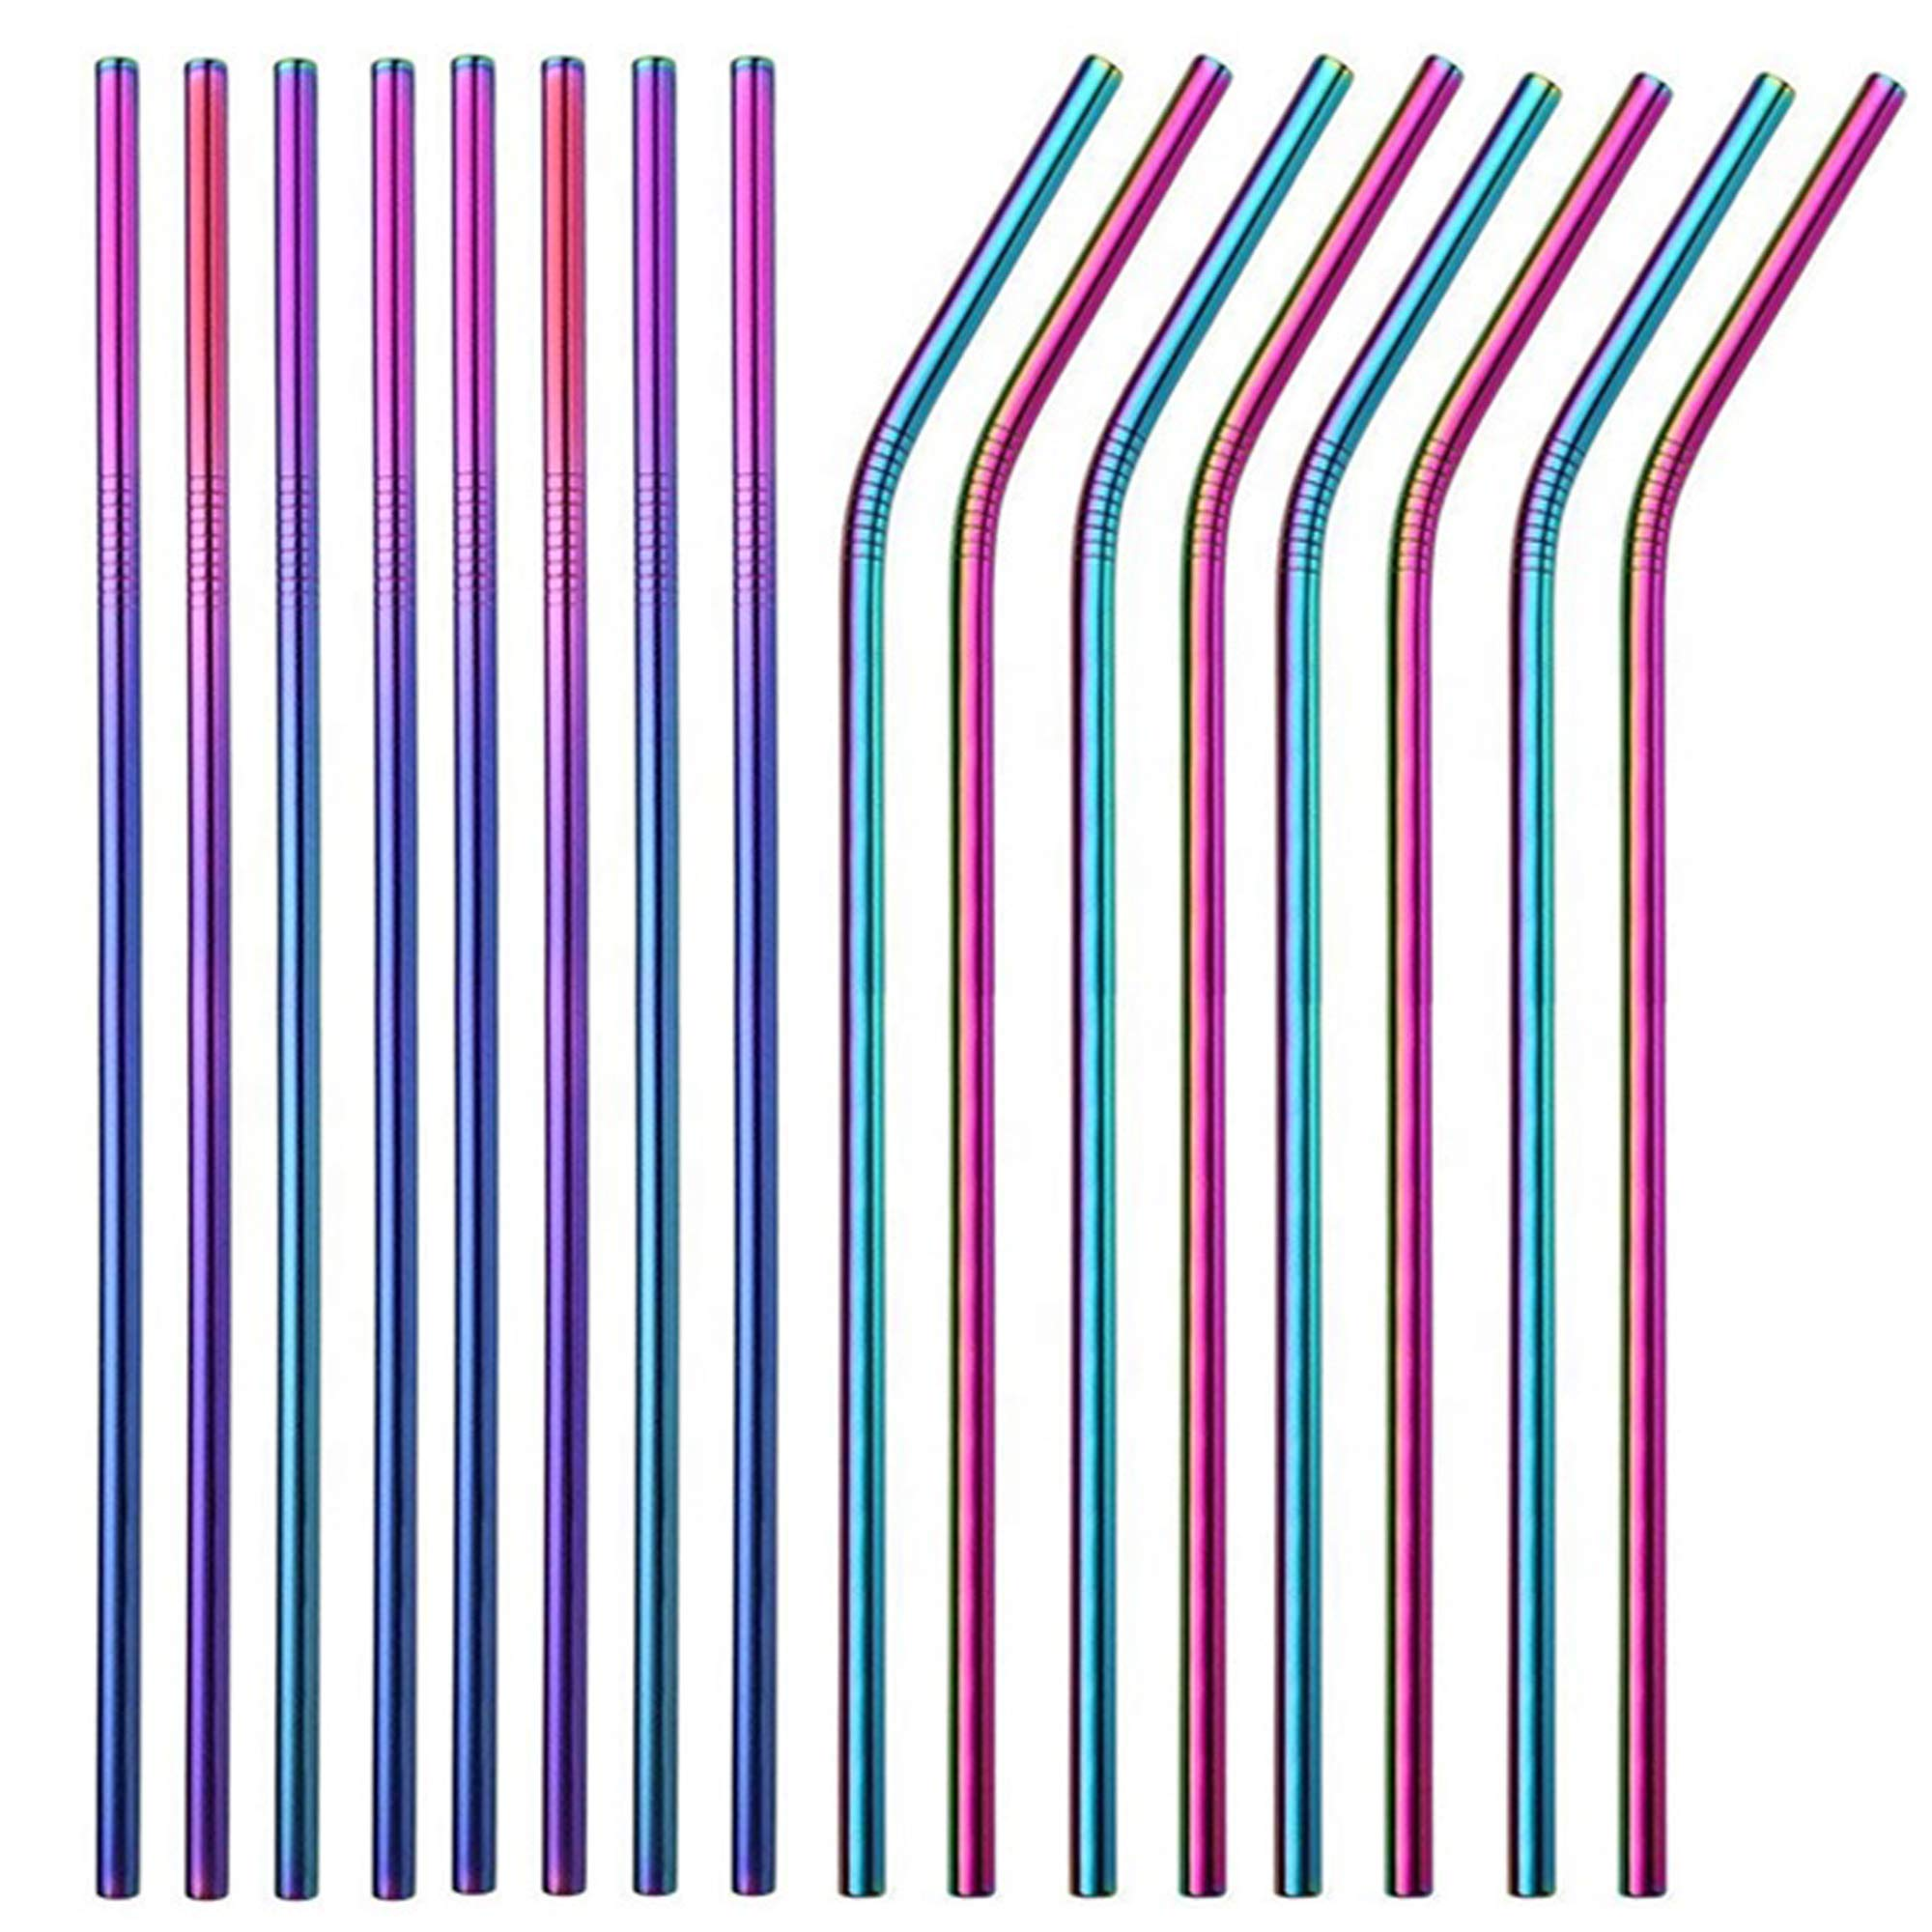 Brightbuy Set of 48 Stainless Steel Straws 10.5'' Reusable Metal Drinking Straws For 30oz Tumblers Yeti 6mm Diameter (24 Straight + 24 Bent) (Rainbow) by Brightbuy